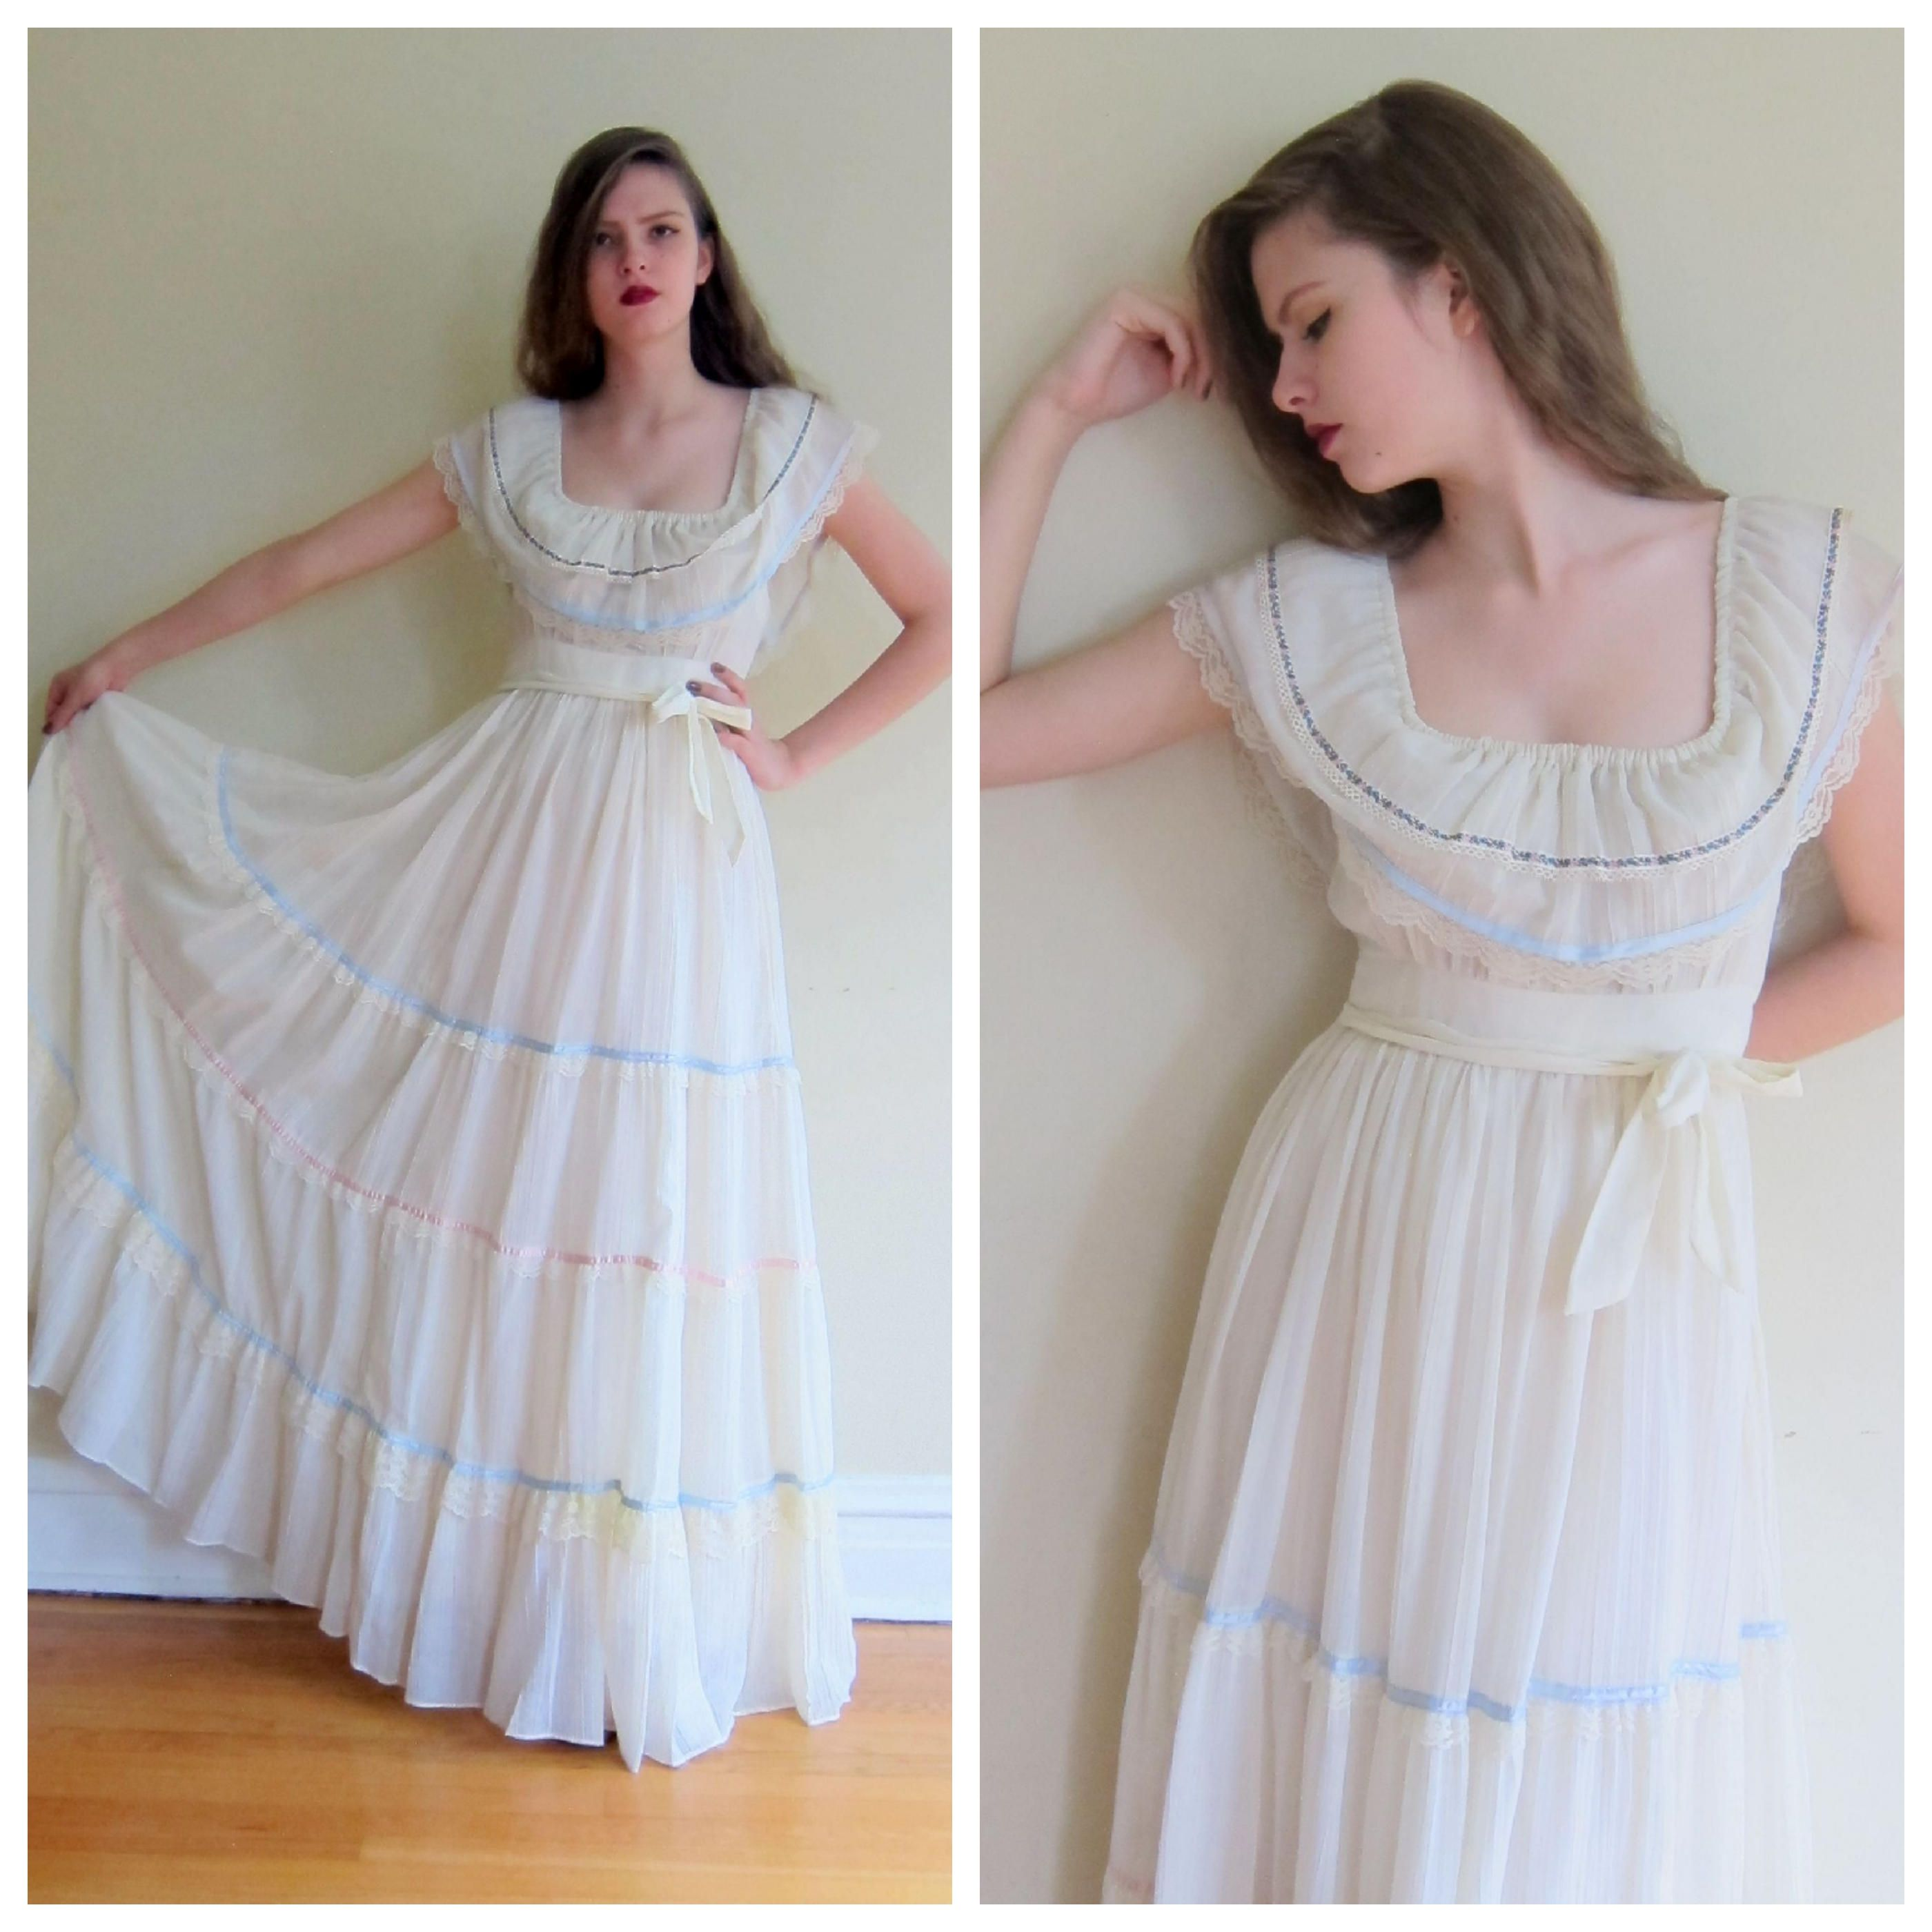 Vintage 1970s Gunne Sax Maxi Dress White With Floral Ribbon Lace Trim 70s Summer Dress With Ruffled Collar Tiered Skirt Boho Romantic Med White Maxi Dresses Summer Dresses Dresses [ 2800 x 2800 Pixel ]